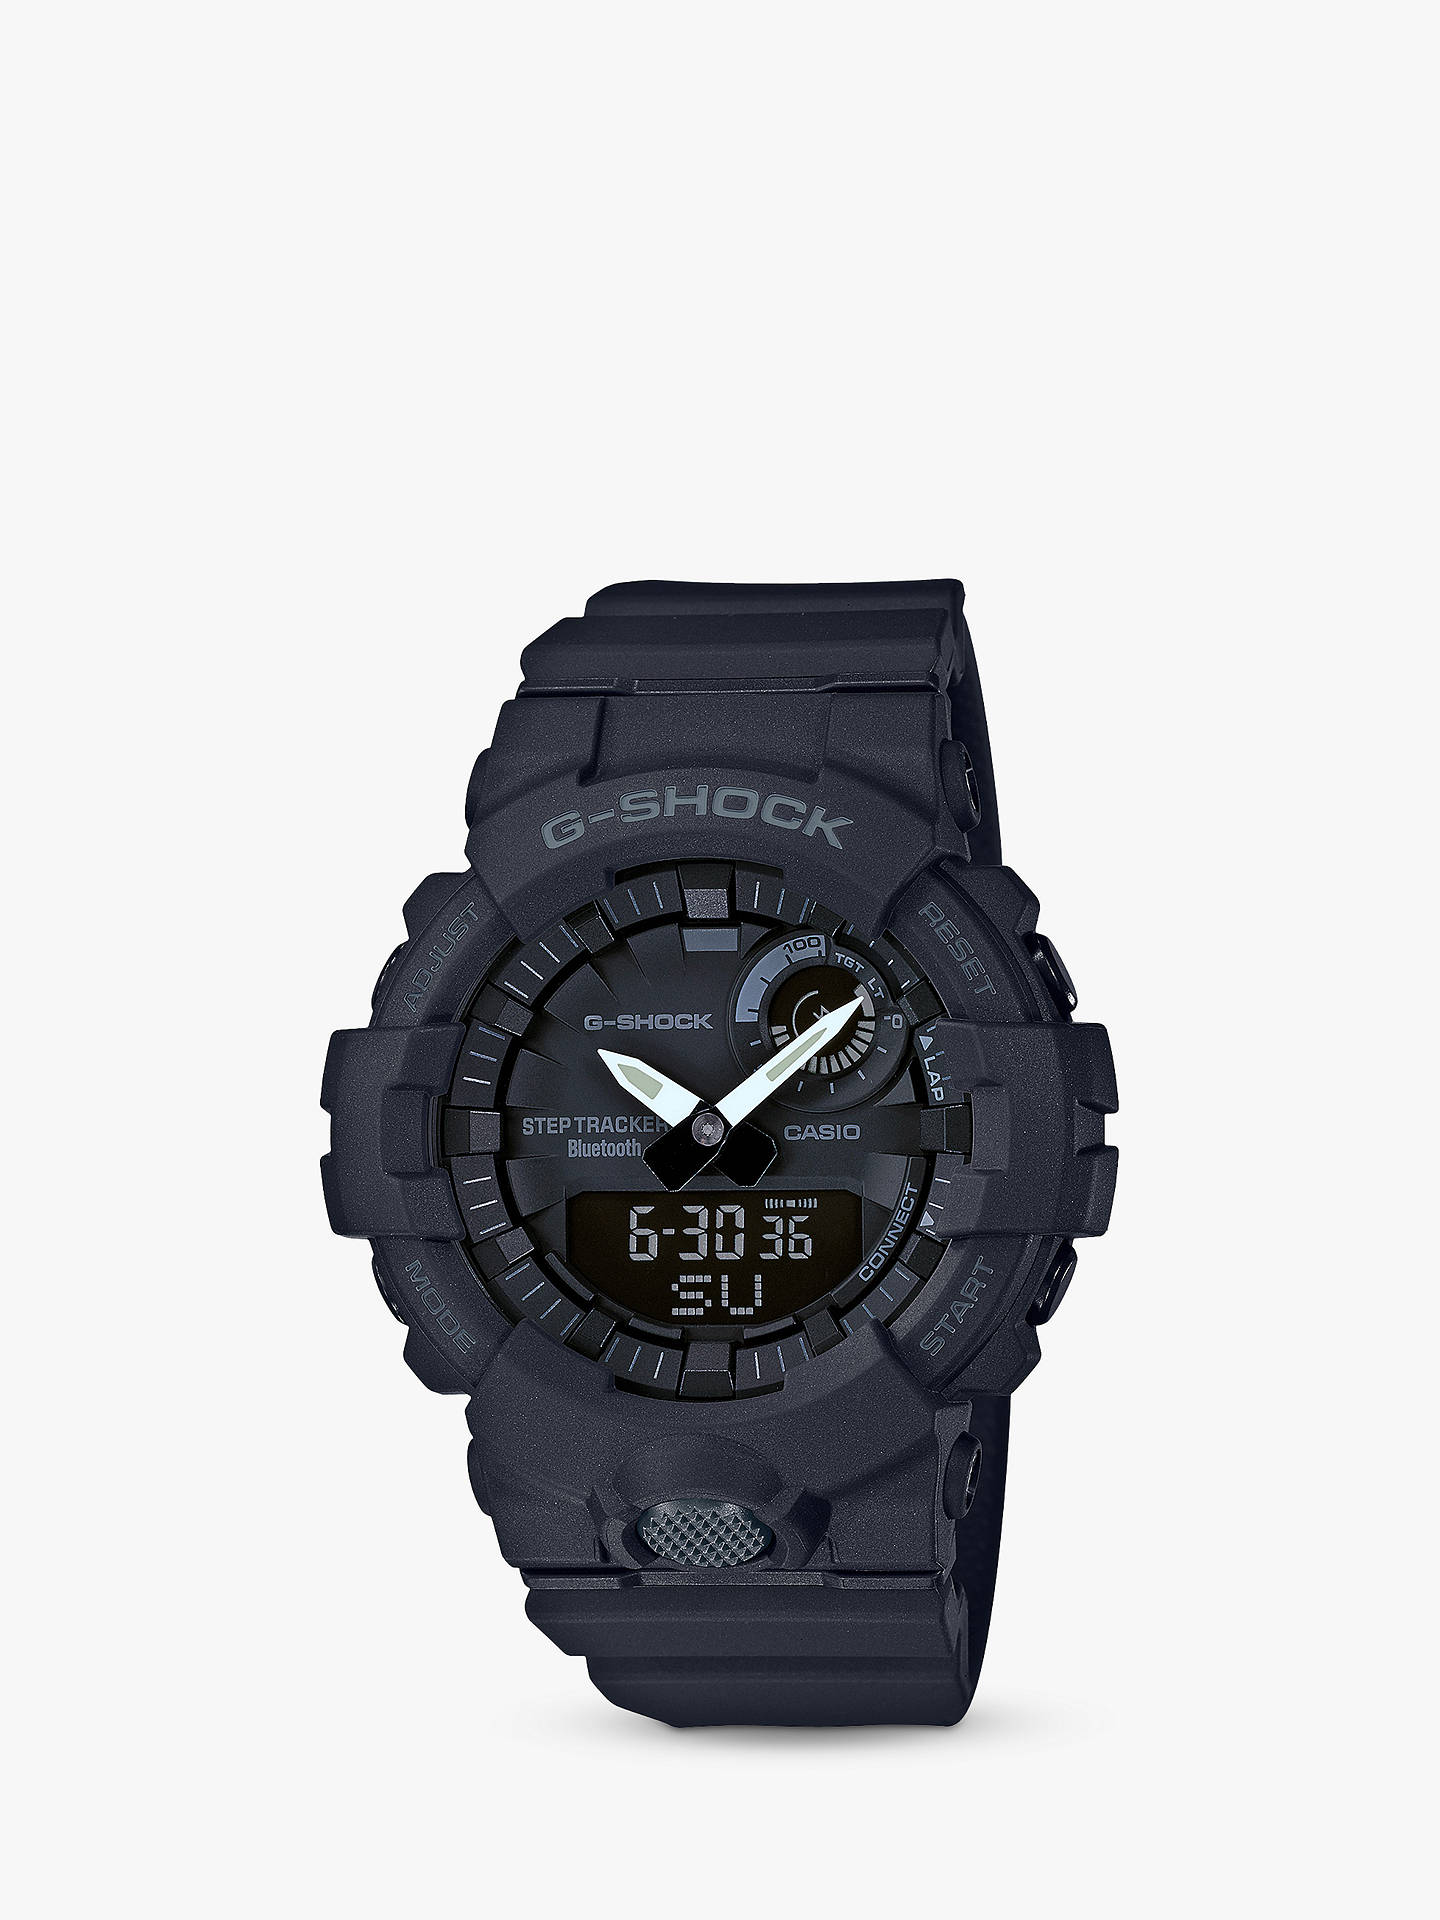 Casio Mens G Shock Step Tracker Bluetooth Resin Strap Watch At John